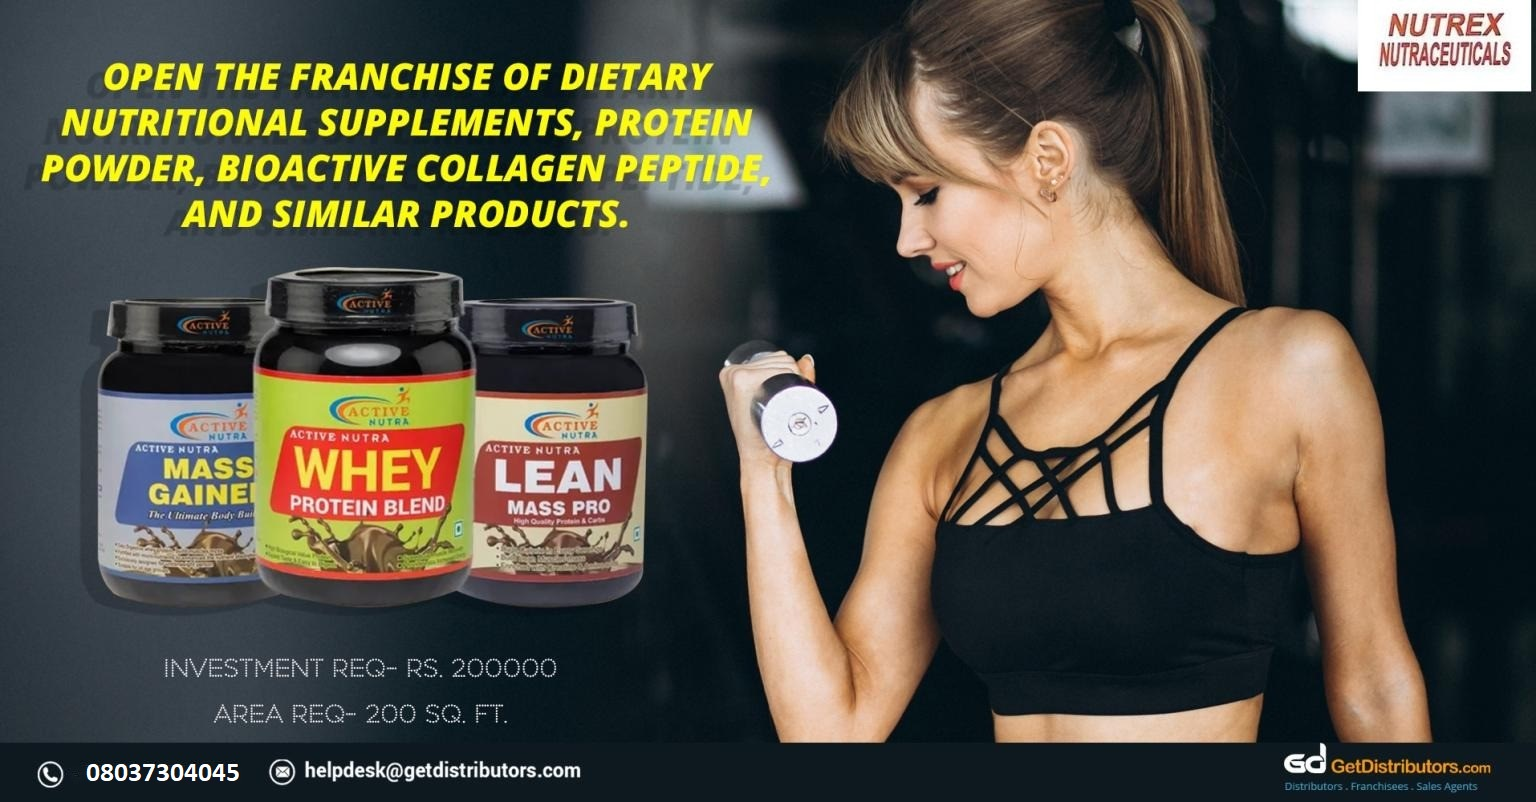 Offering Franchises Of Health Products At Really Attractive Prices